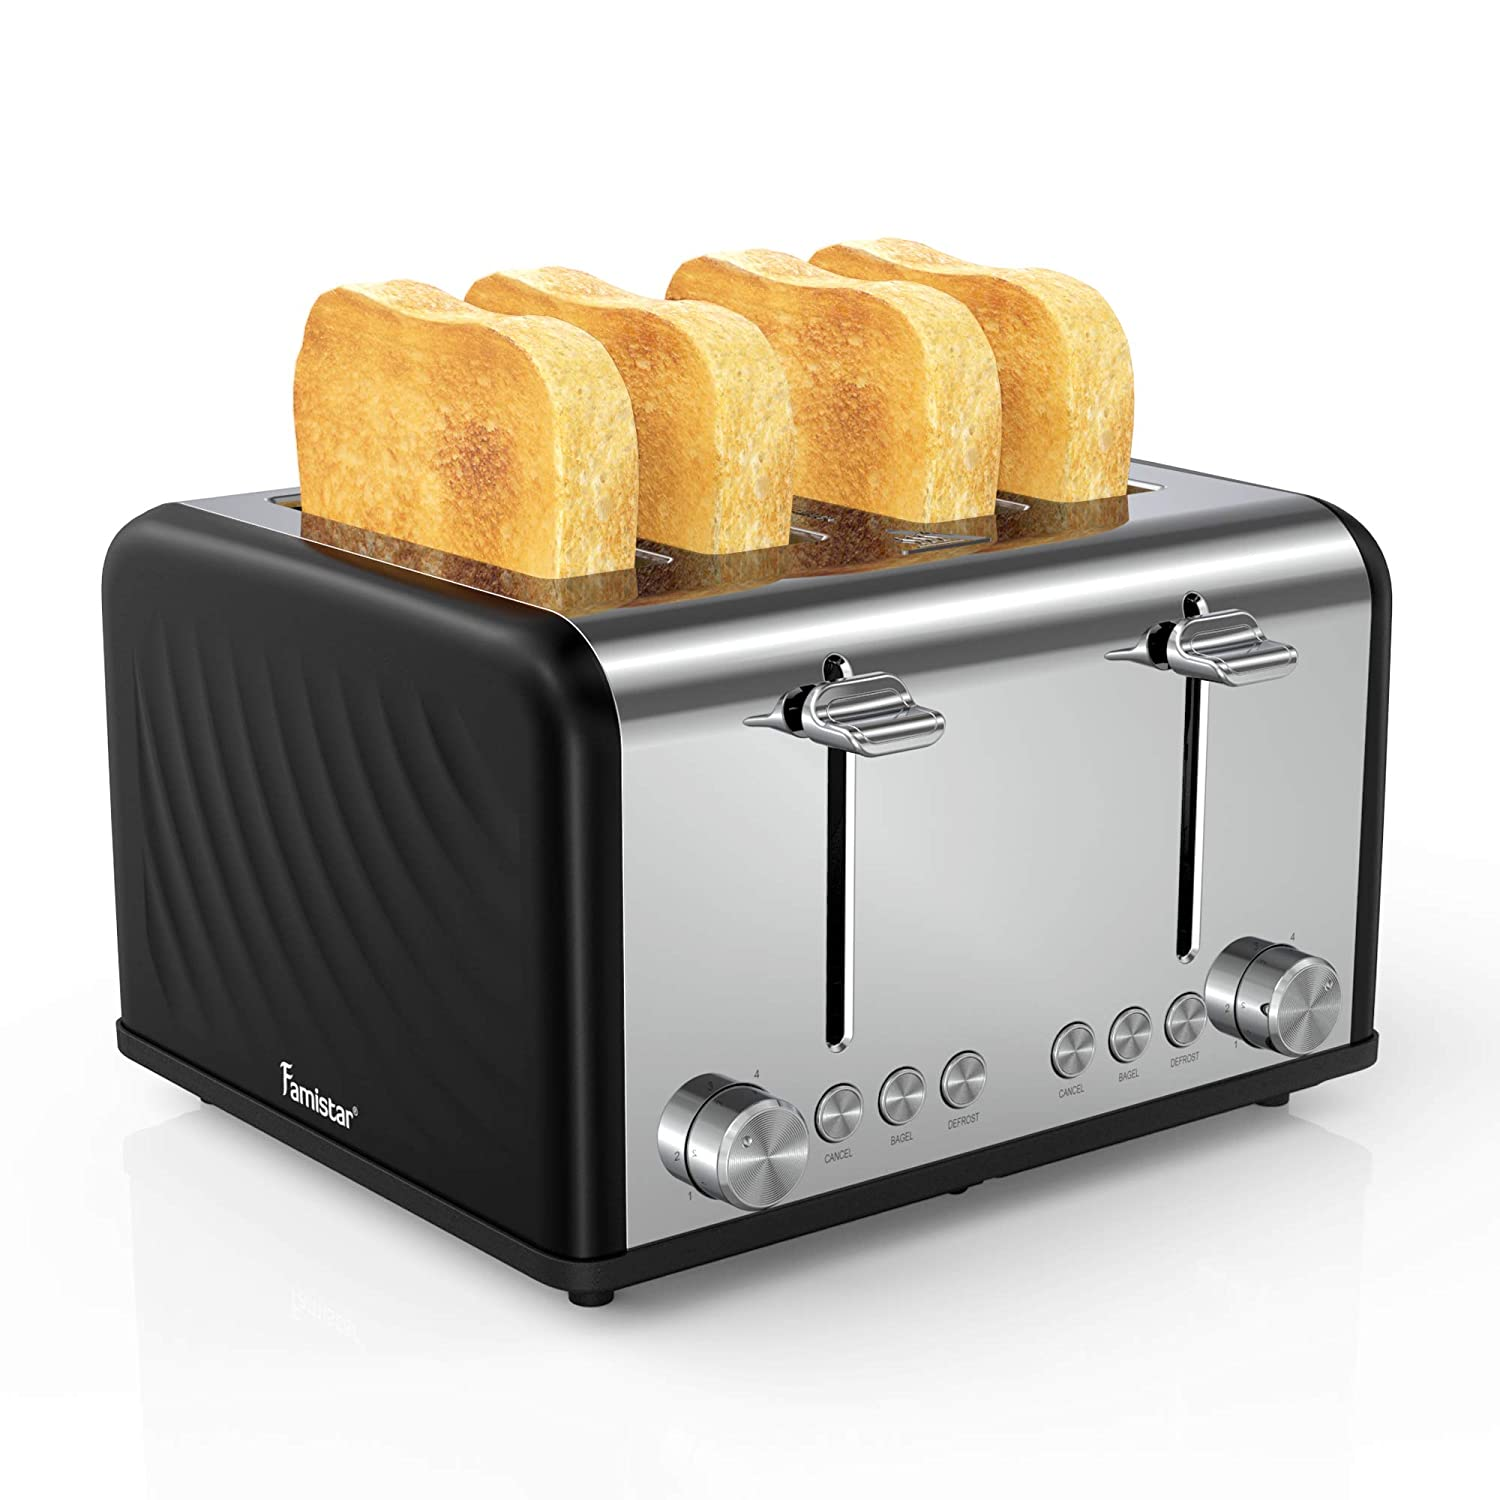 Toaster 4 Slice, Famistar Stainless Steel 1650W Toaster, Extra Wide Slots Four Slice 6 Bread Shade Settings Bread Bagel Toaster with Bagel, Cancel, Defrost Function